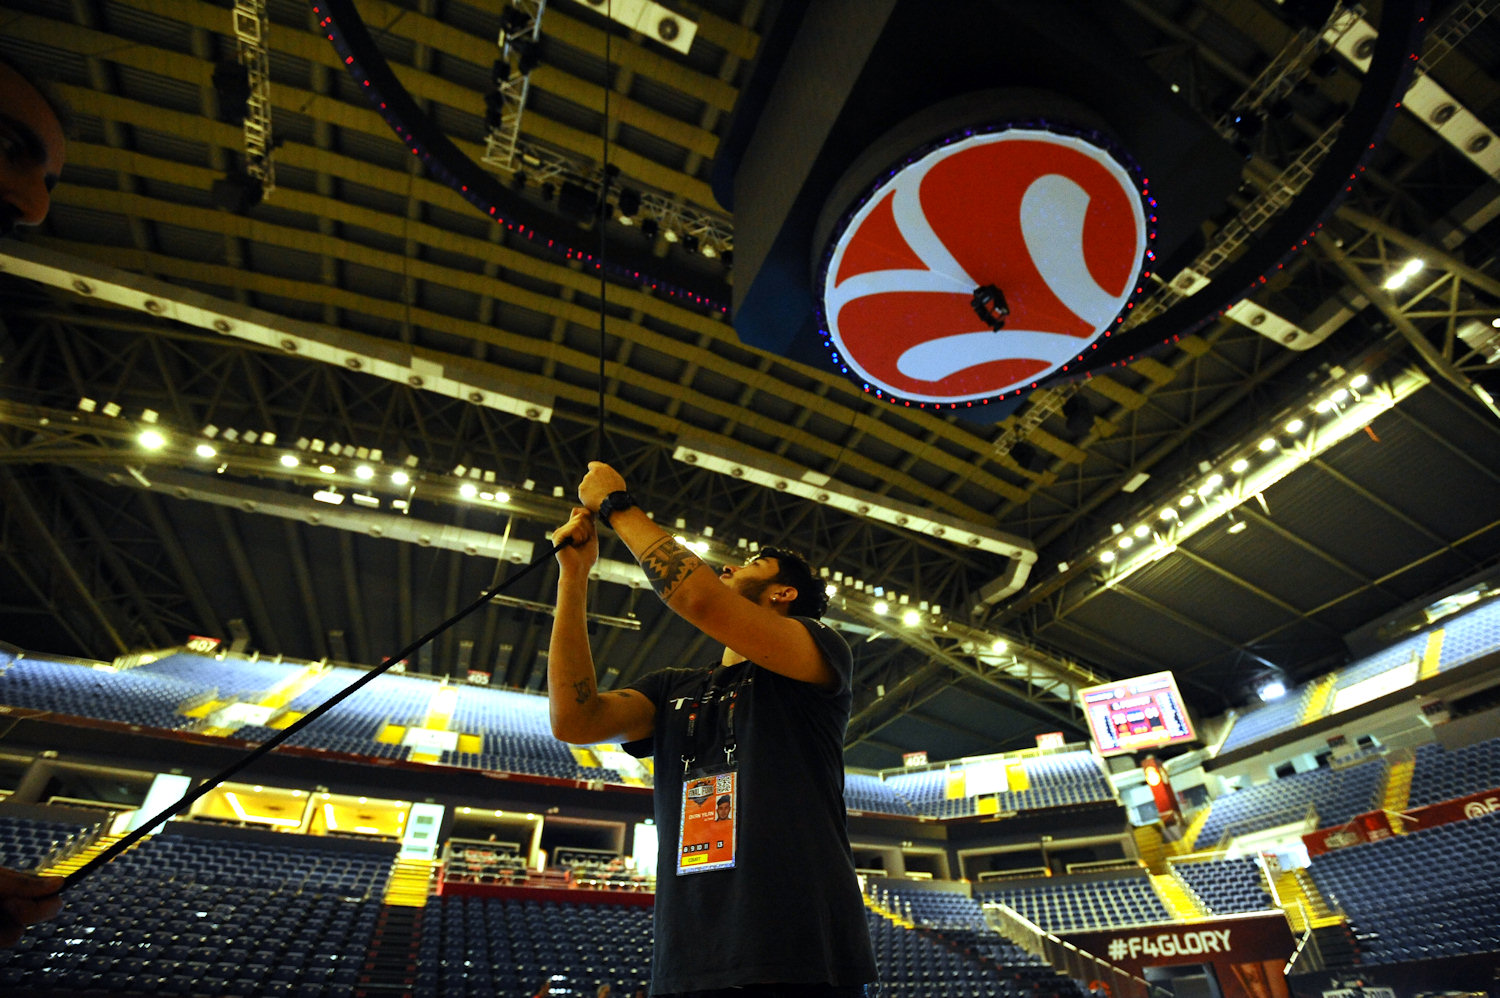 The Sinan Erdem Dome gets ready for the 2017 Final Four - Final Four Istanbul 2017 - EB16